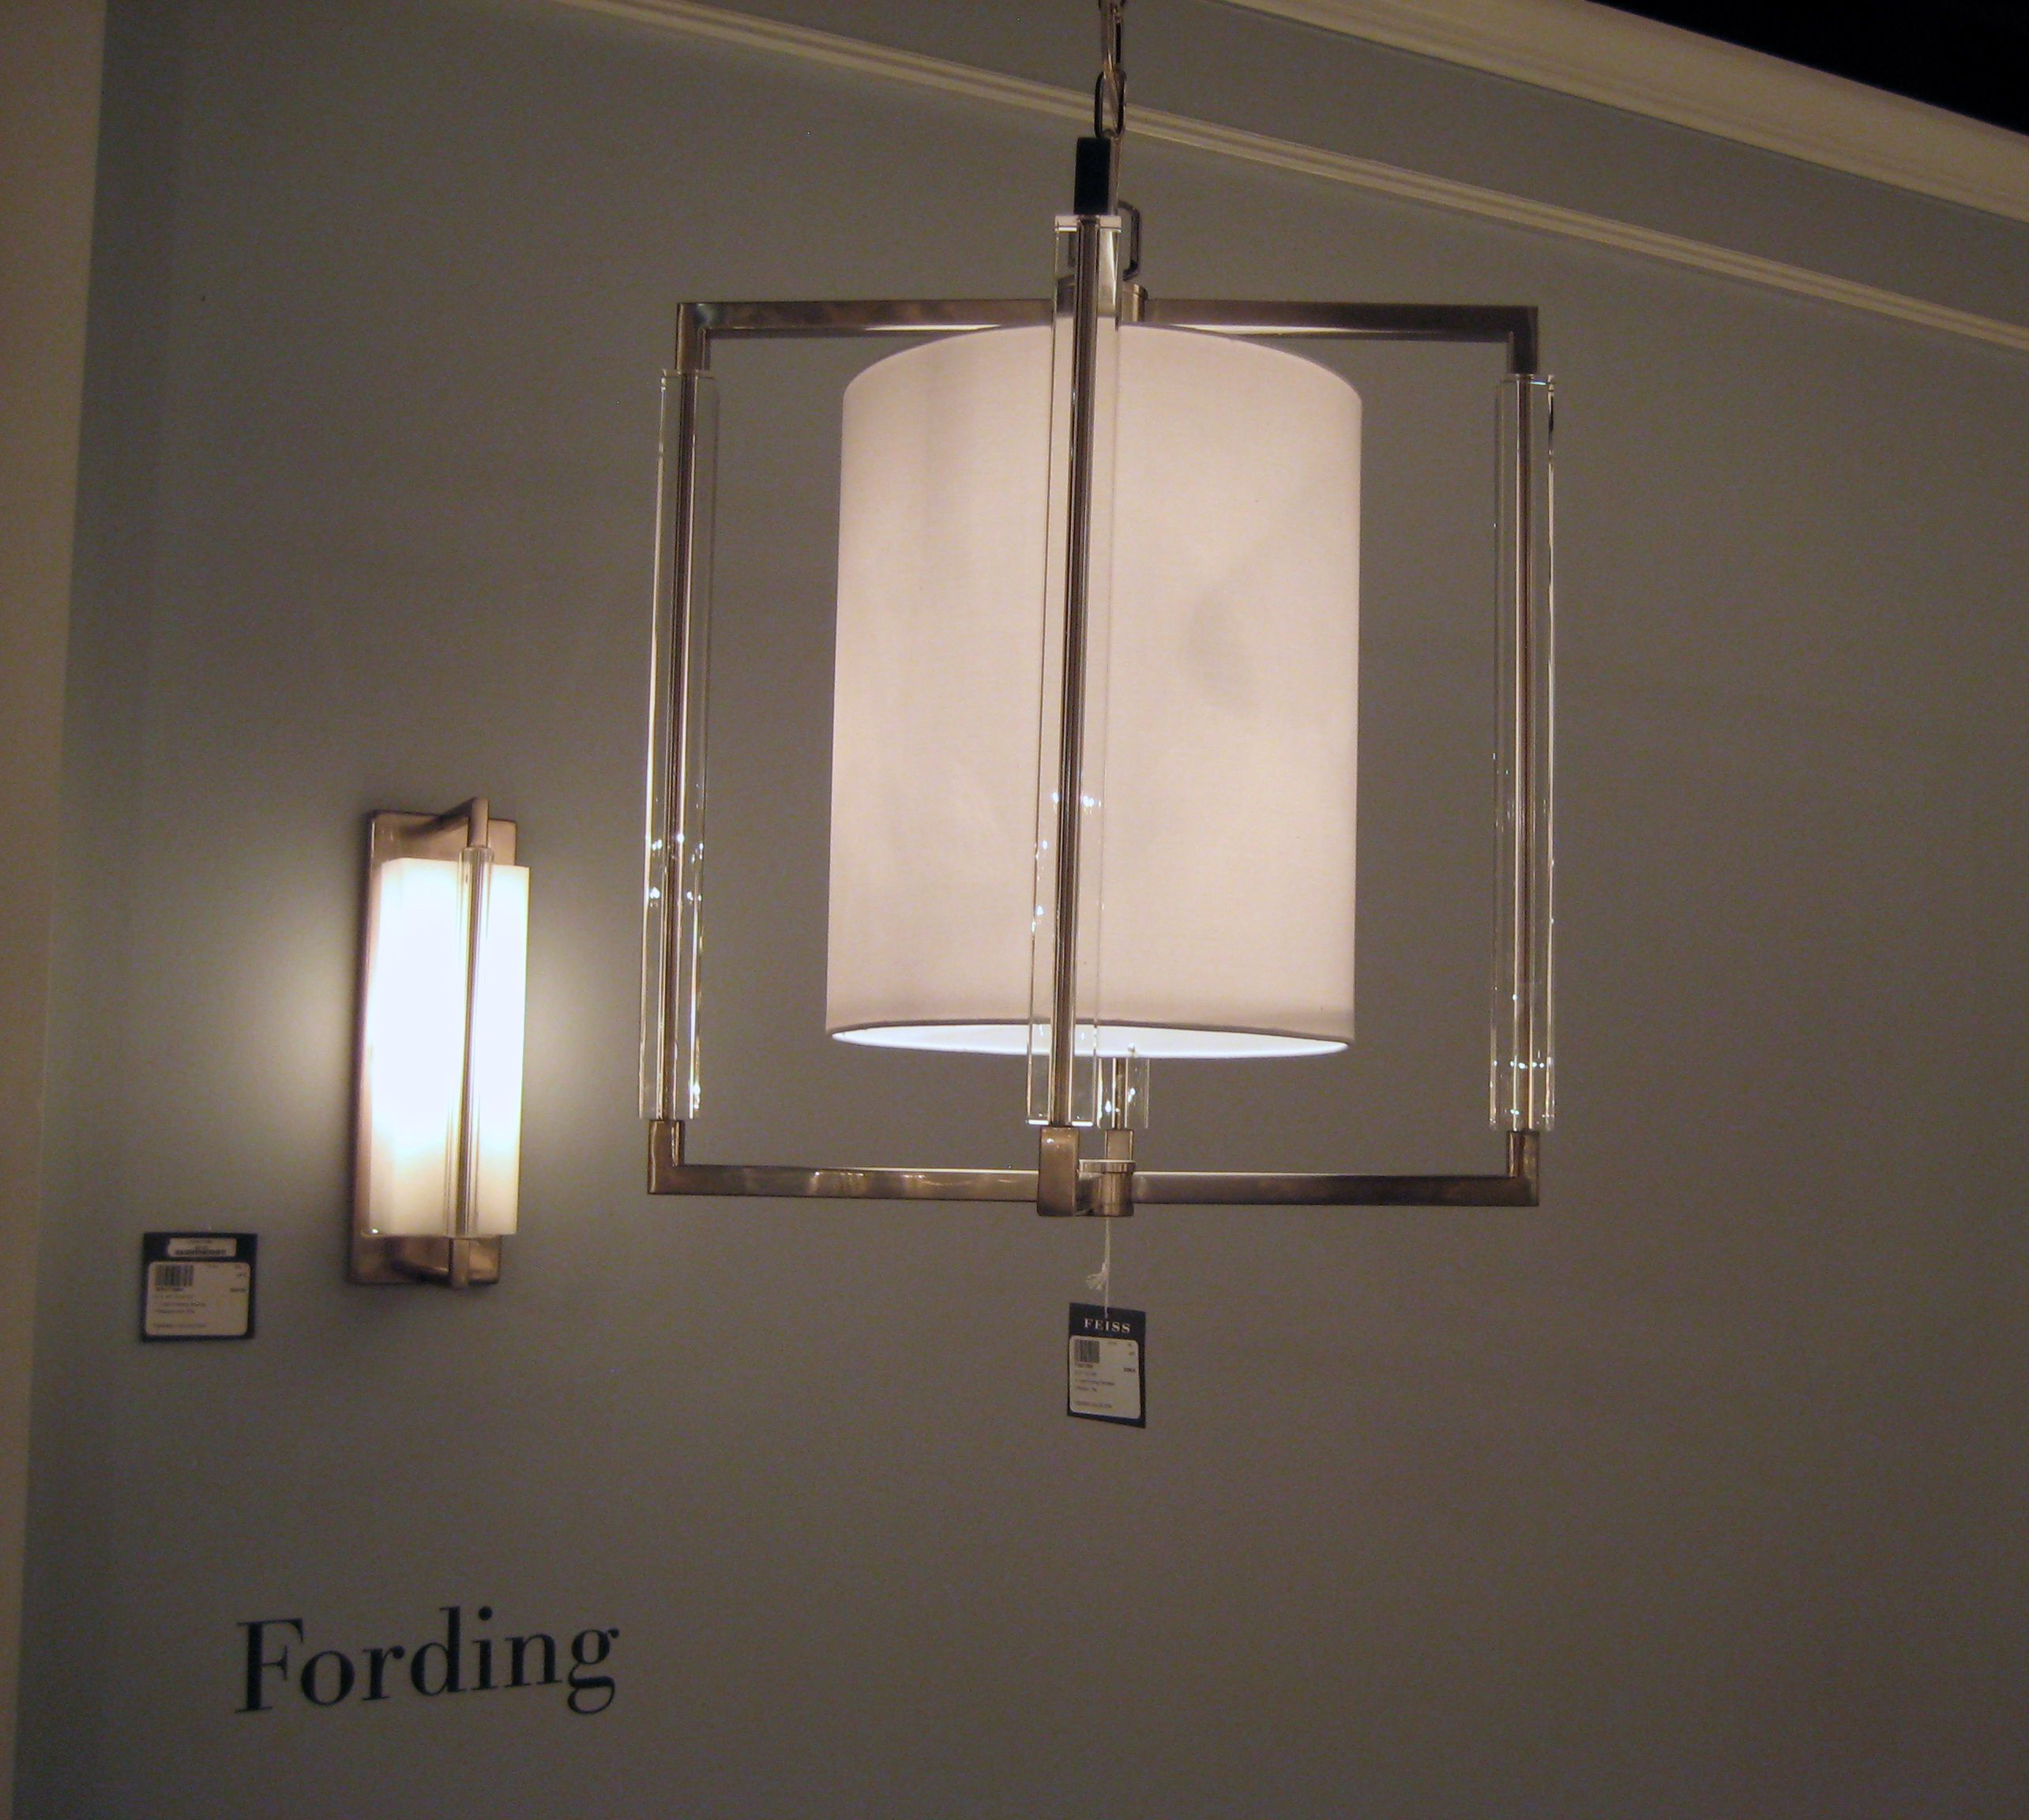 Fording Collection, Feiss, Brushed Steel finish, core-drilled ...